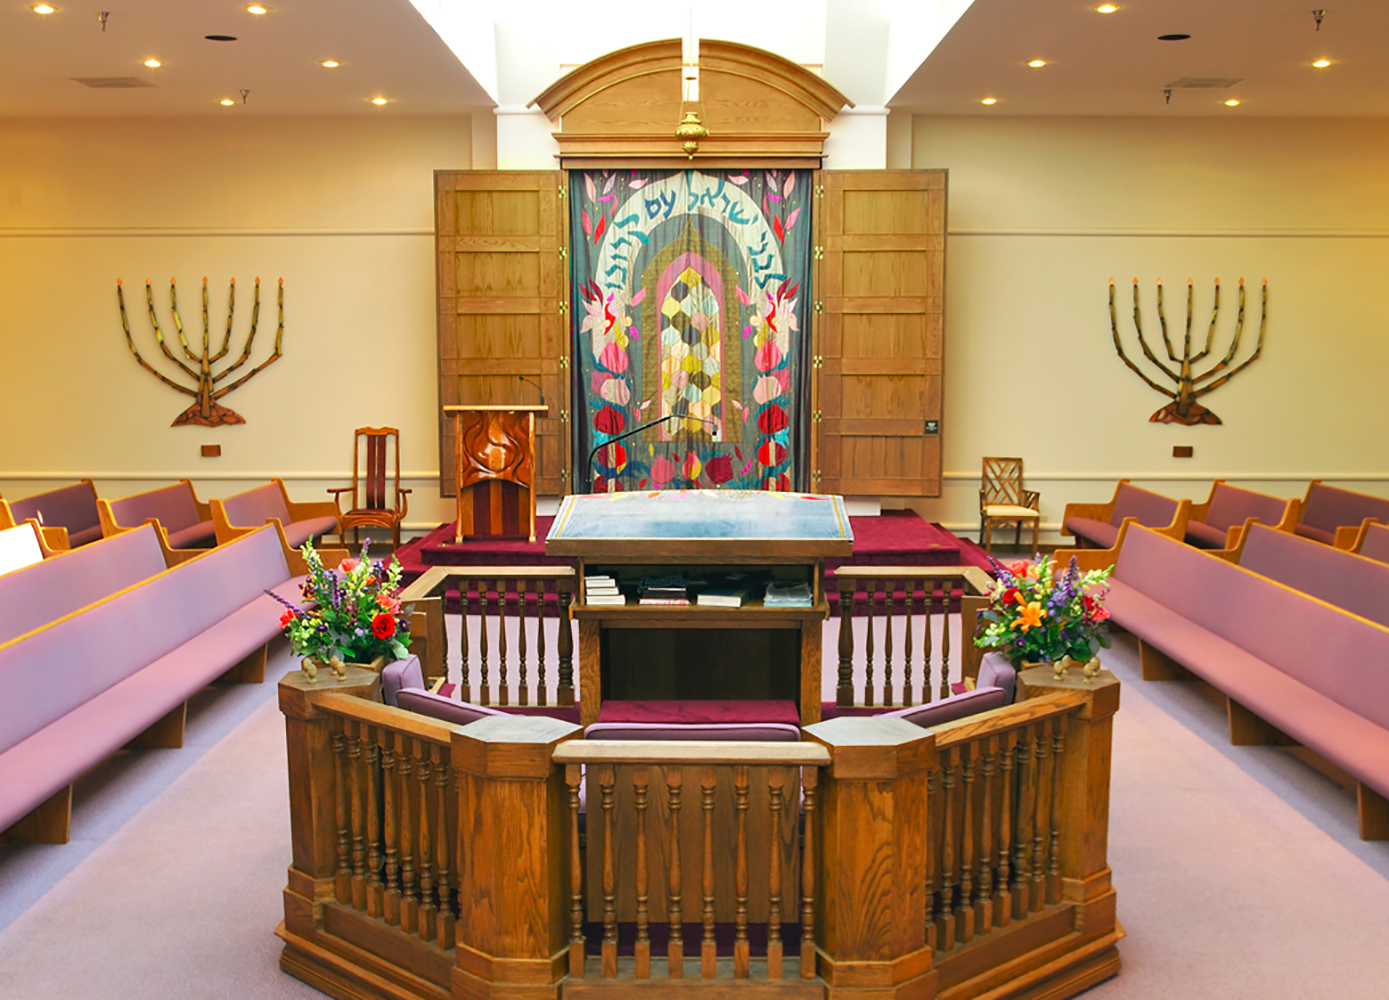 Interior of Synagogue sacttuary Architectural Photography